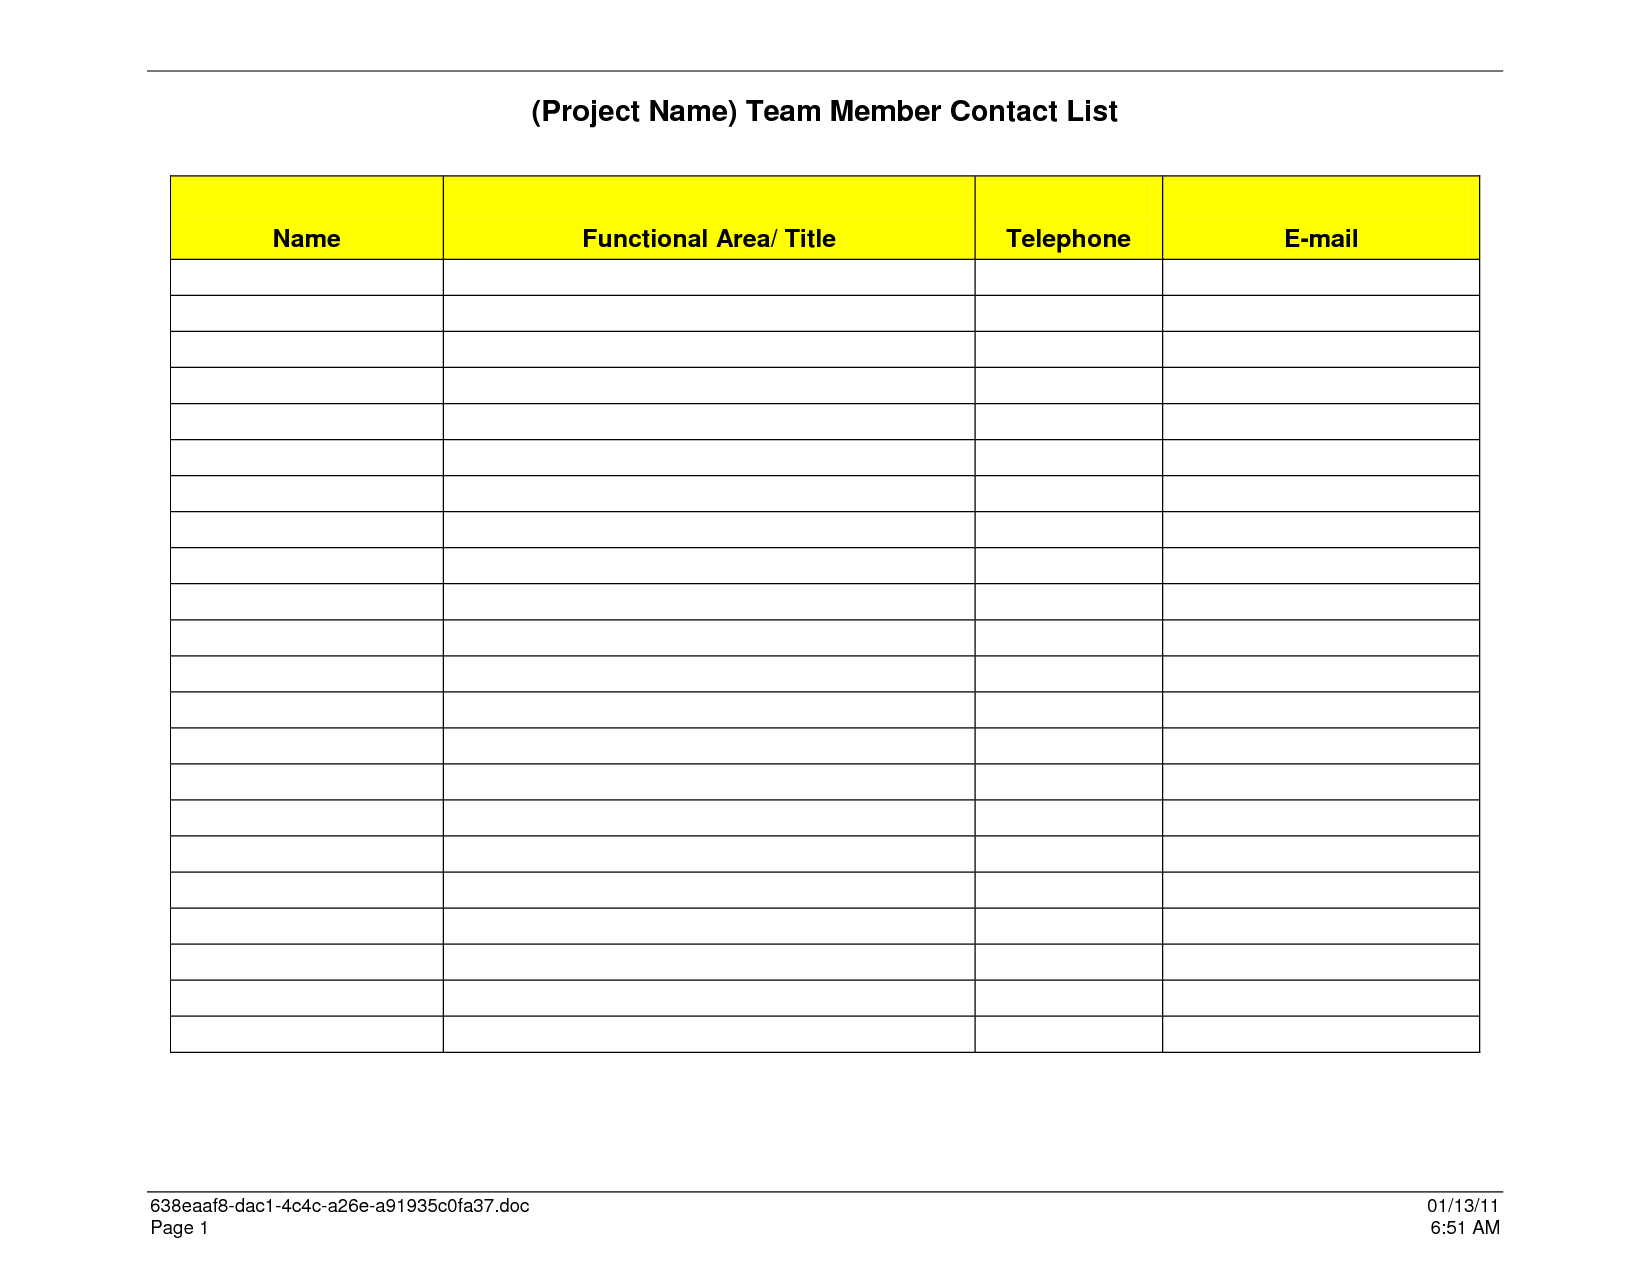 Sample Contact List Template  Rhodes Cottage  Muizenberg